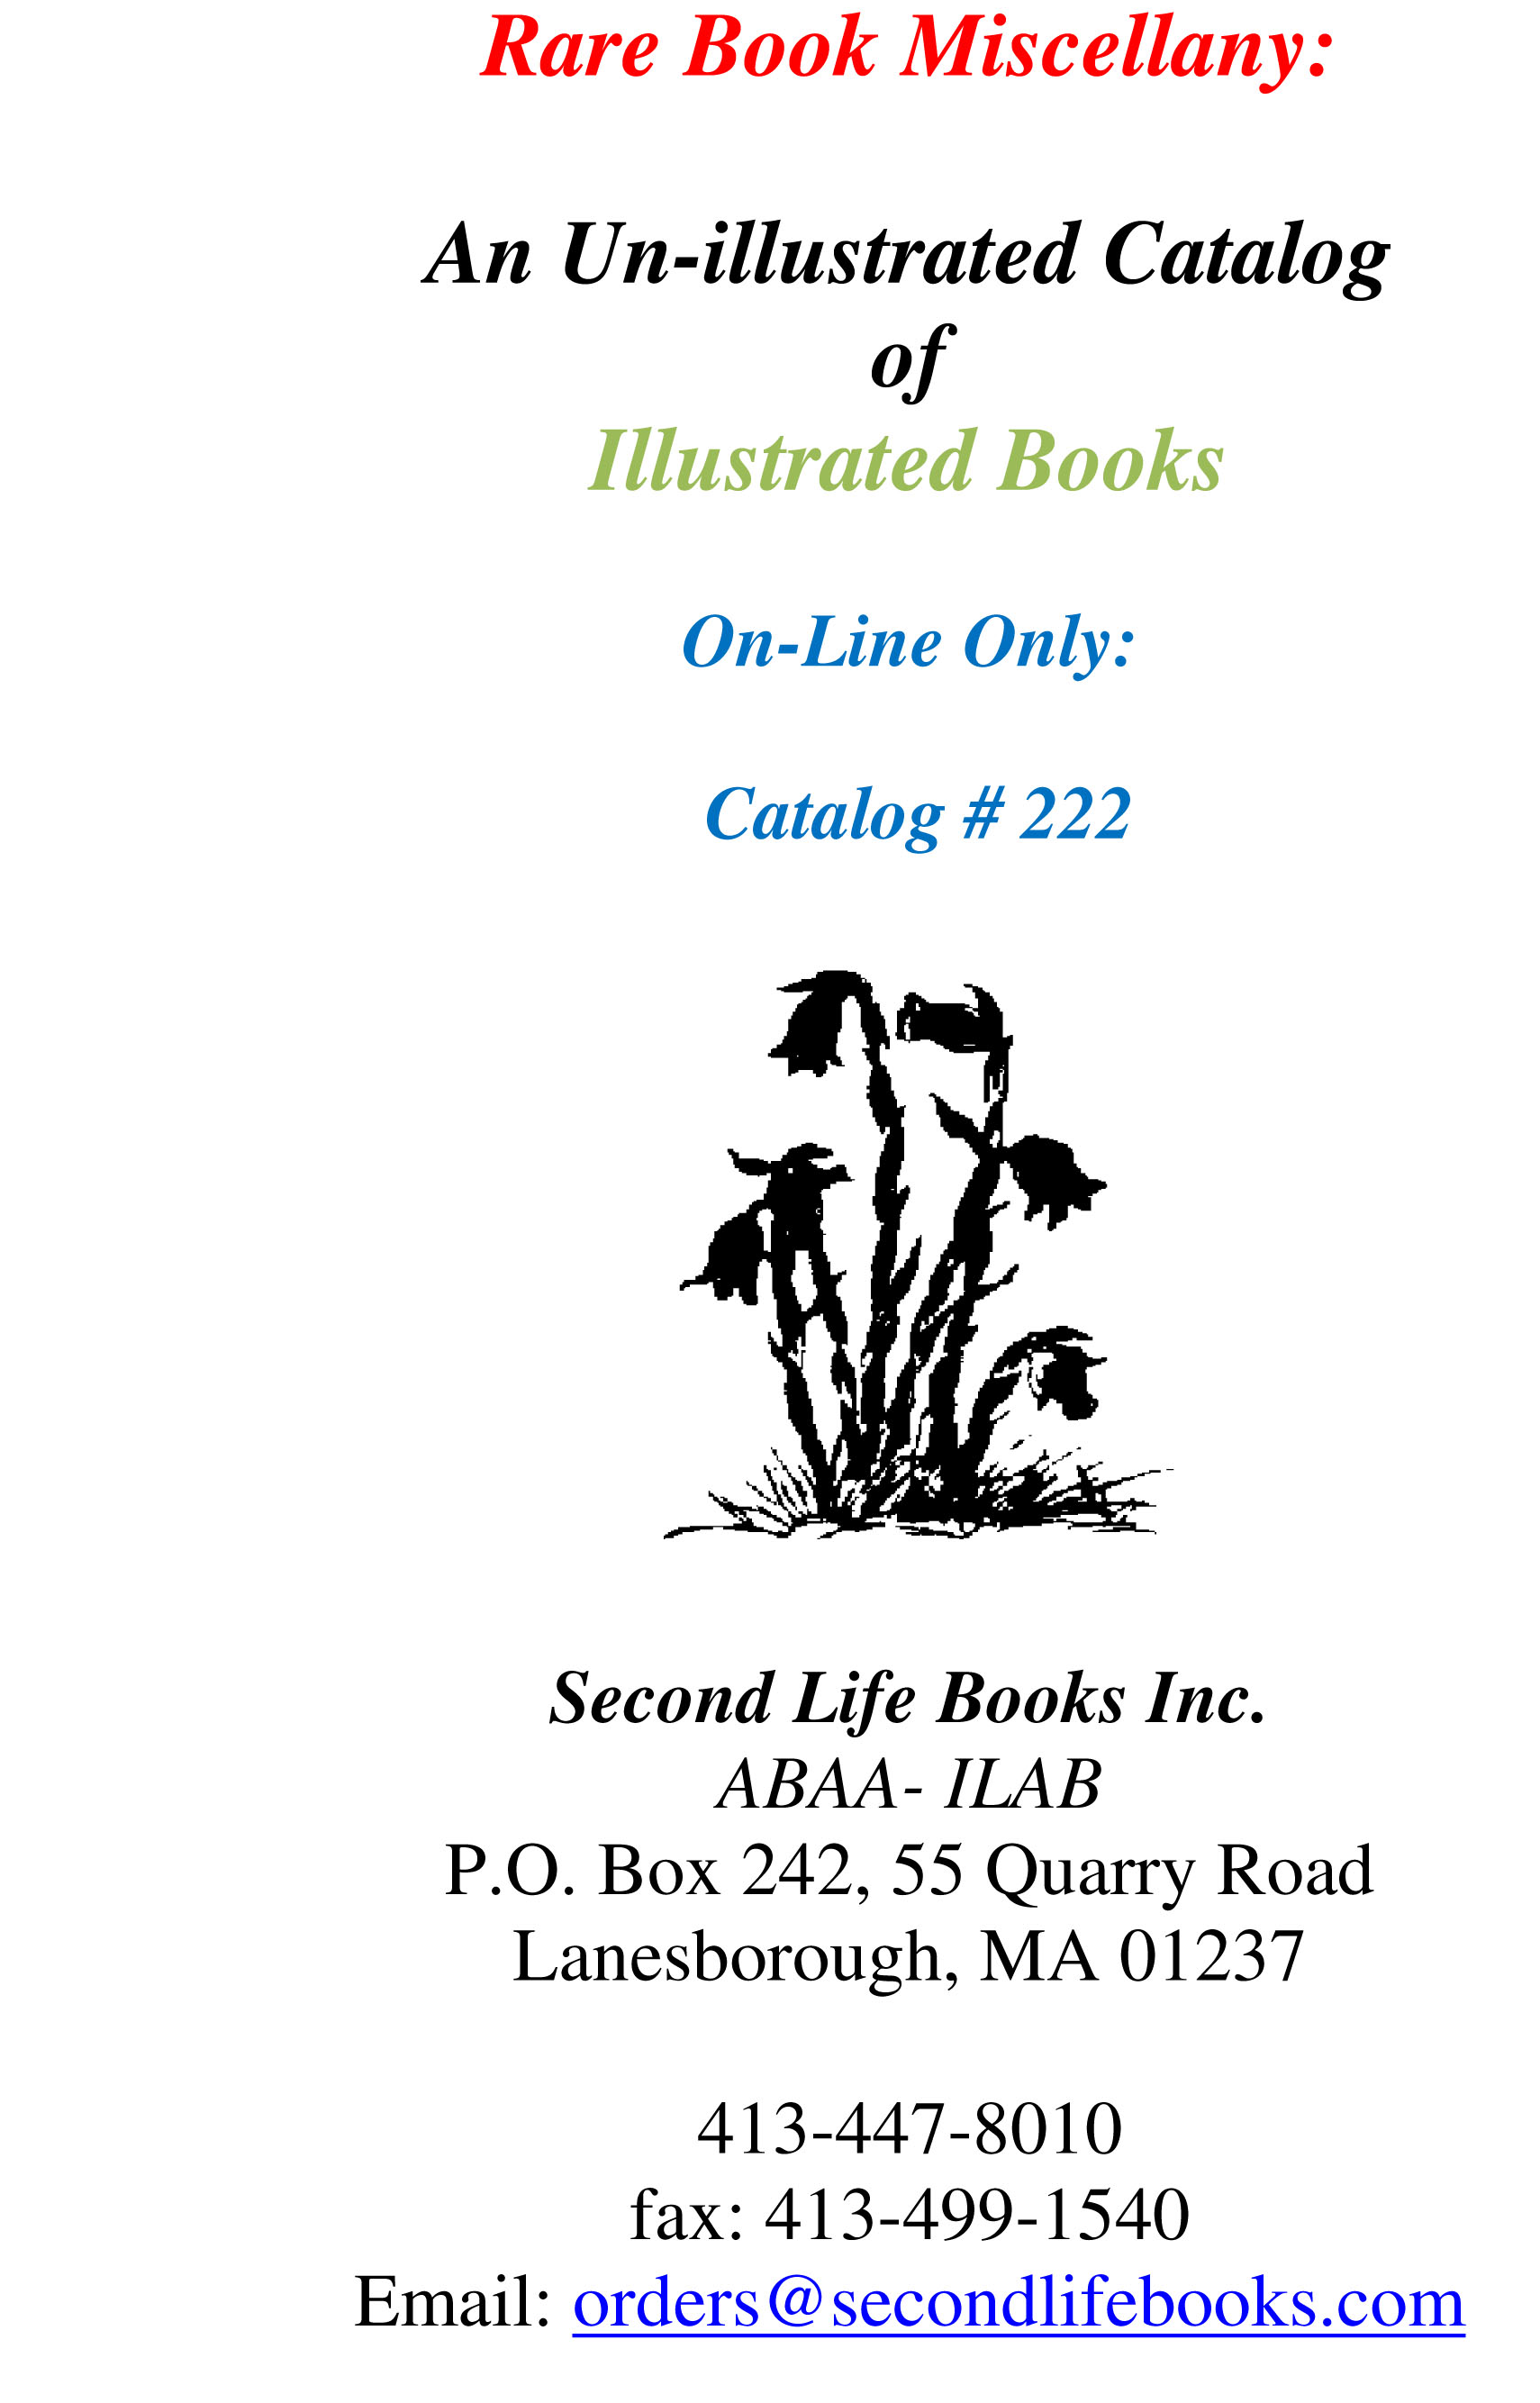 Catalog # 222: Illustrated Books